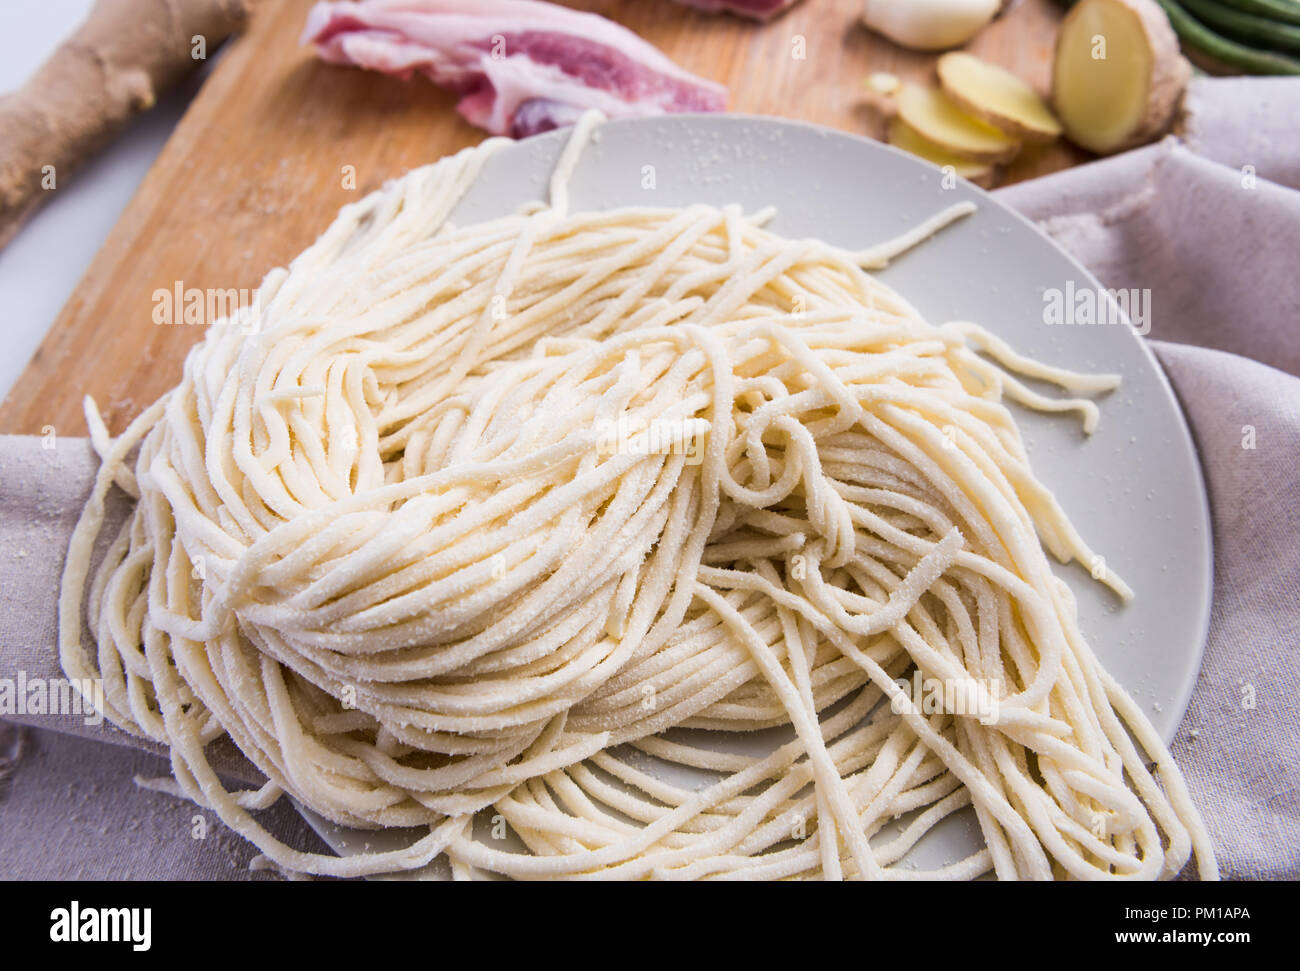 Chinese pasta, fresh noodles and meat, and other vegetables - Stock Image